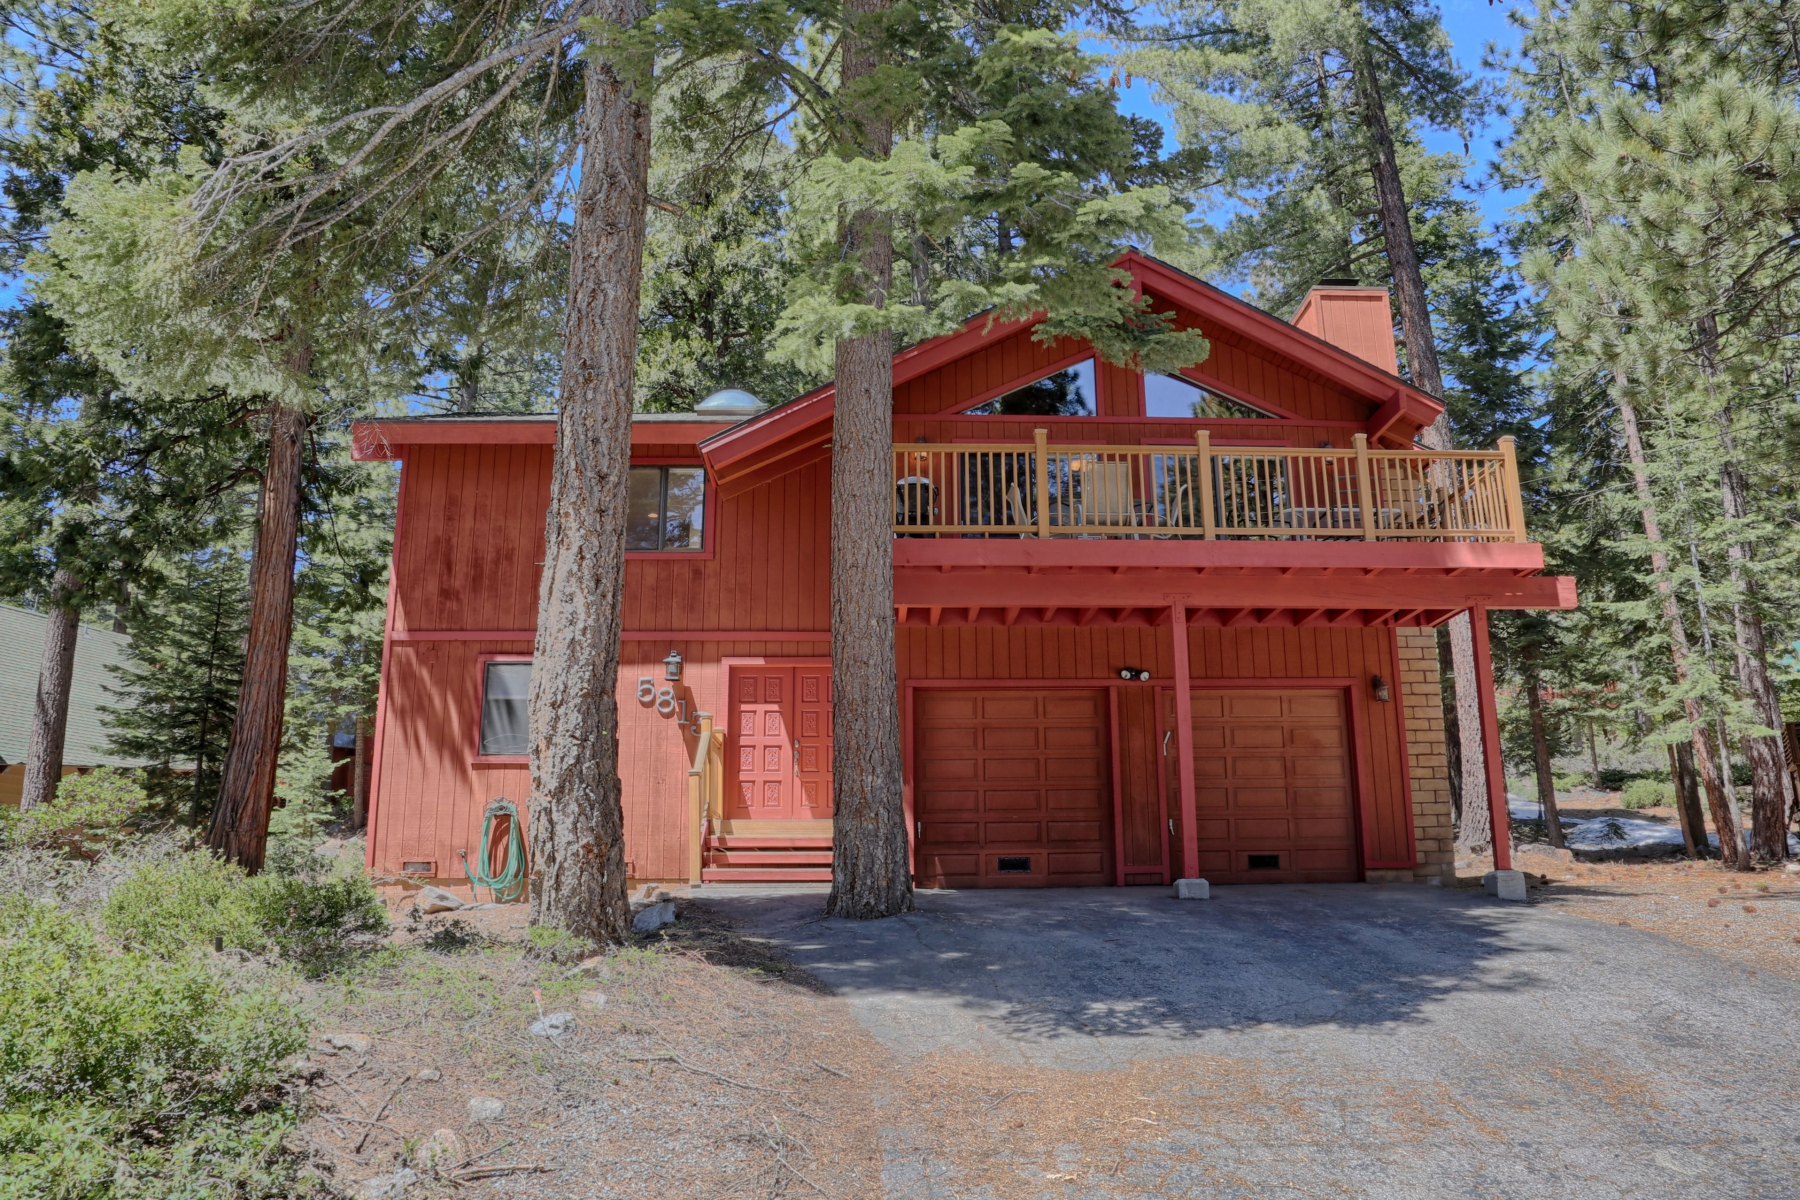 Single Family Home for Active at 5813 Dodowah Rd, Carnelian Bay, CA 5813 Dodowah Rd. Carnelian Bay, California 96140 United States